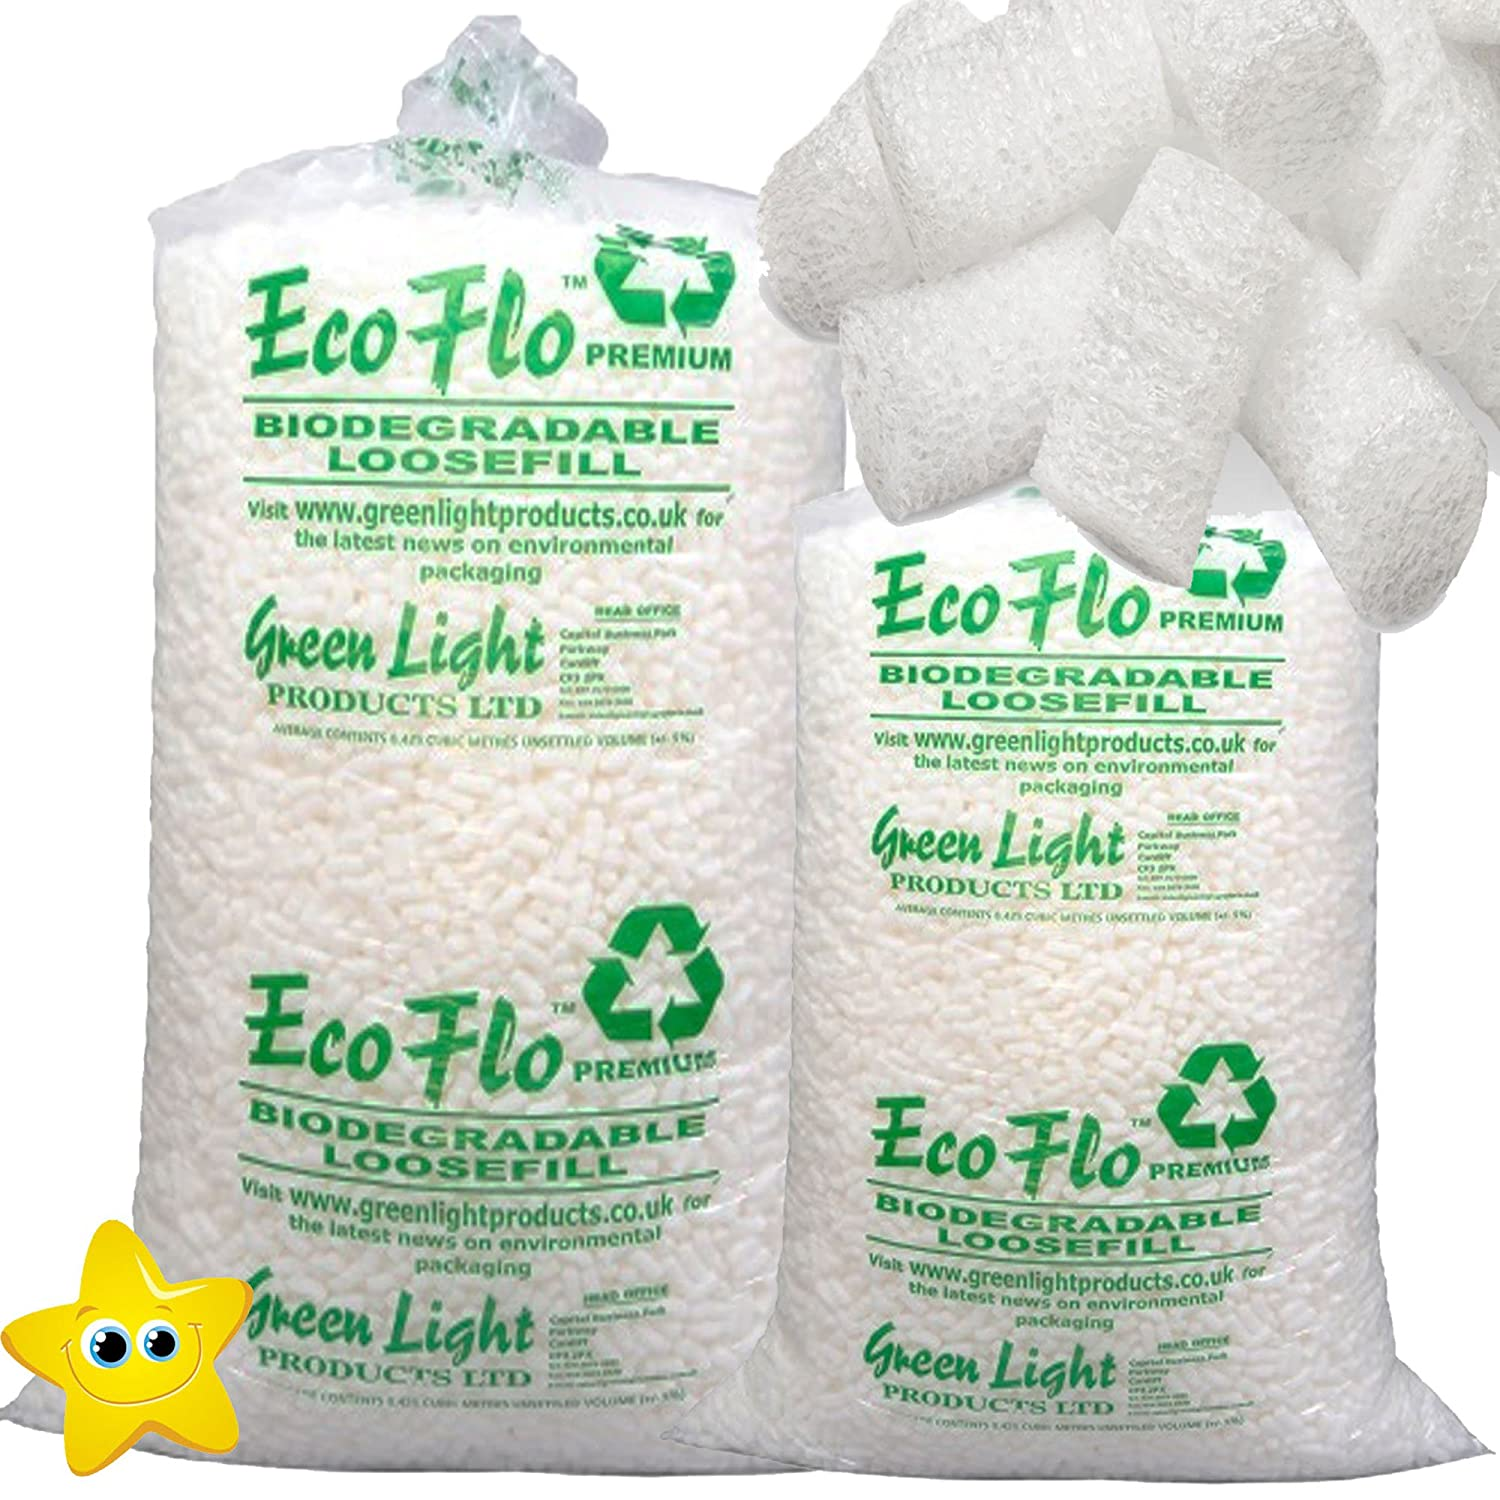 15 Cubic Eco-Flo Biodegradable Loosefill Polystyrene Chips/Packing Peanuts/Protection STAR SUPPLIES